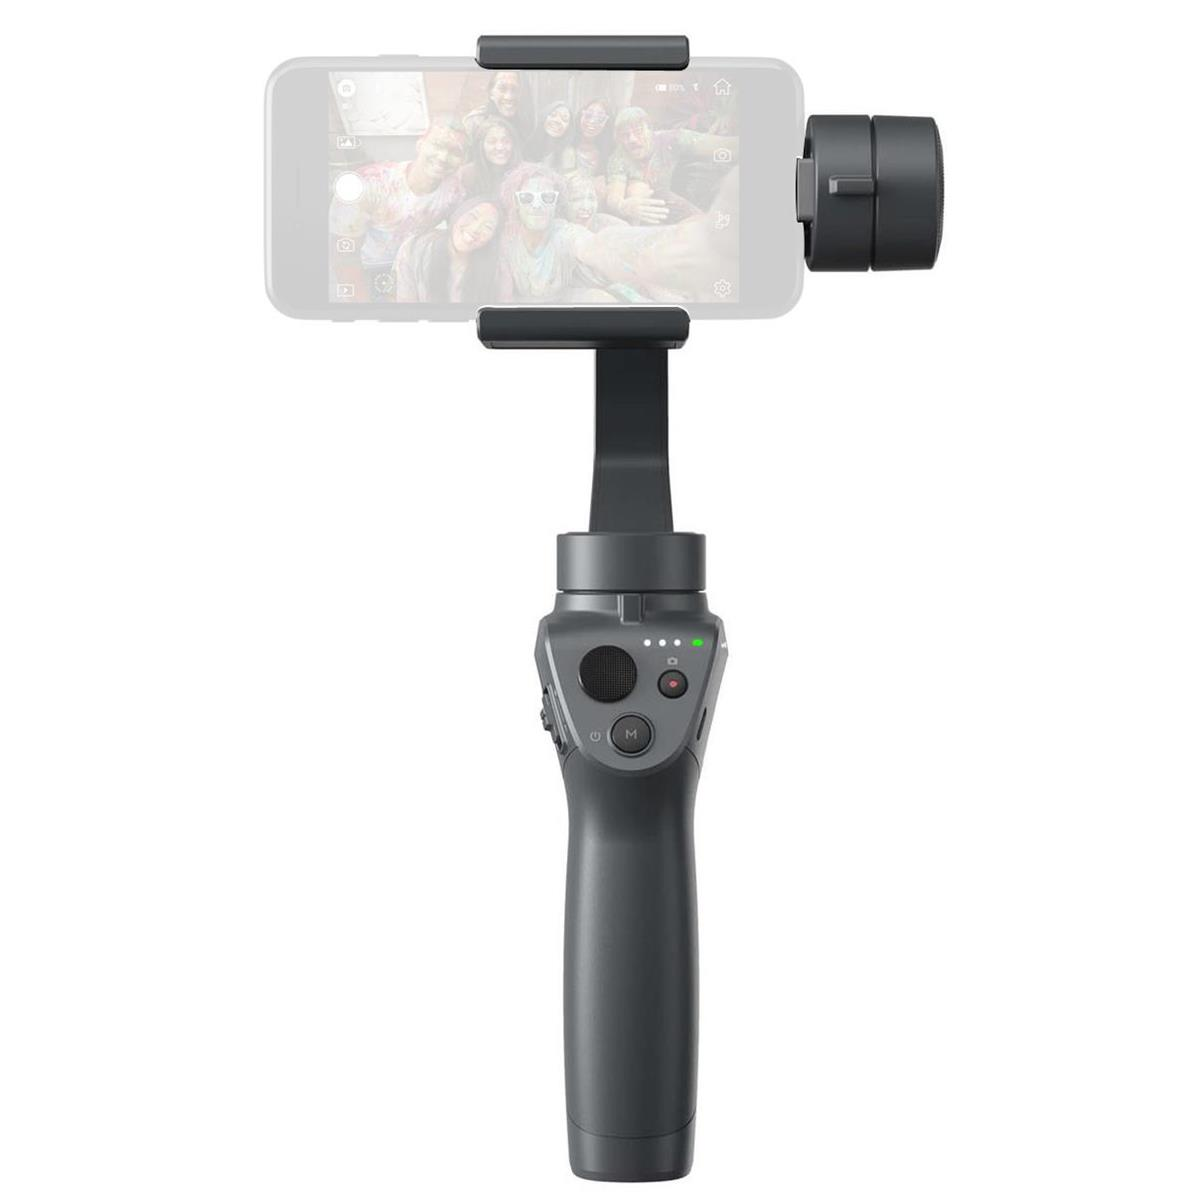 DJI Osmo Mobile 2: Picture 1